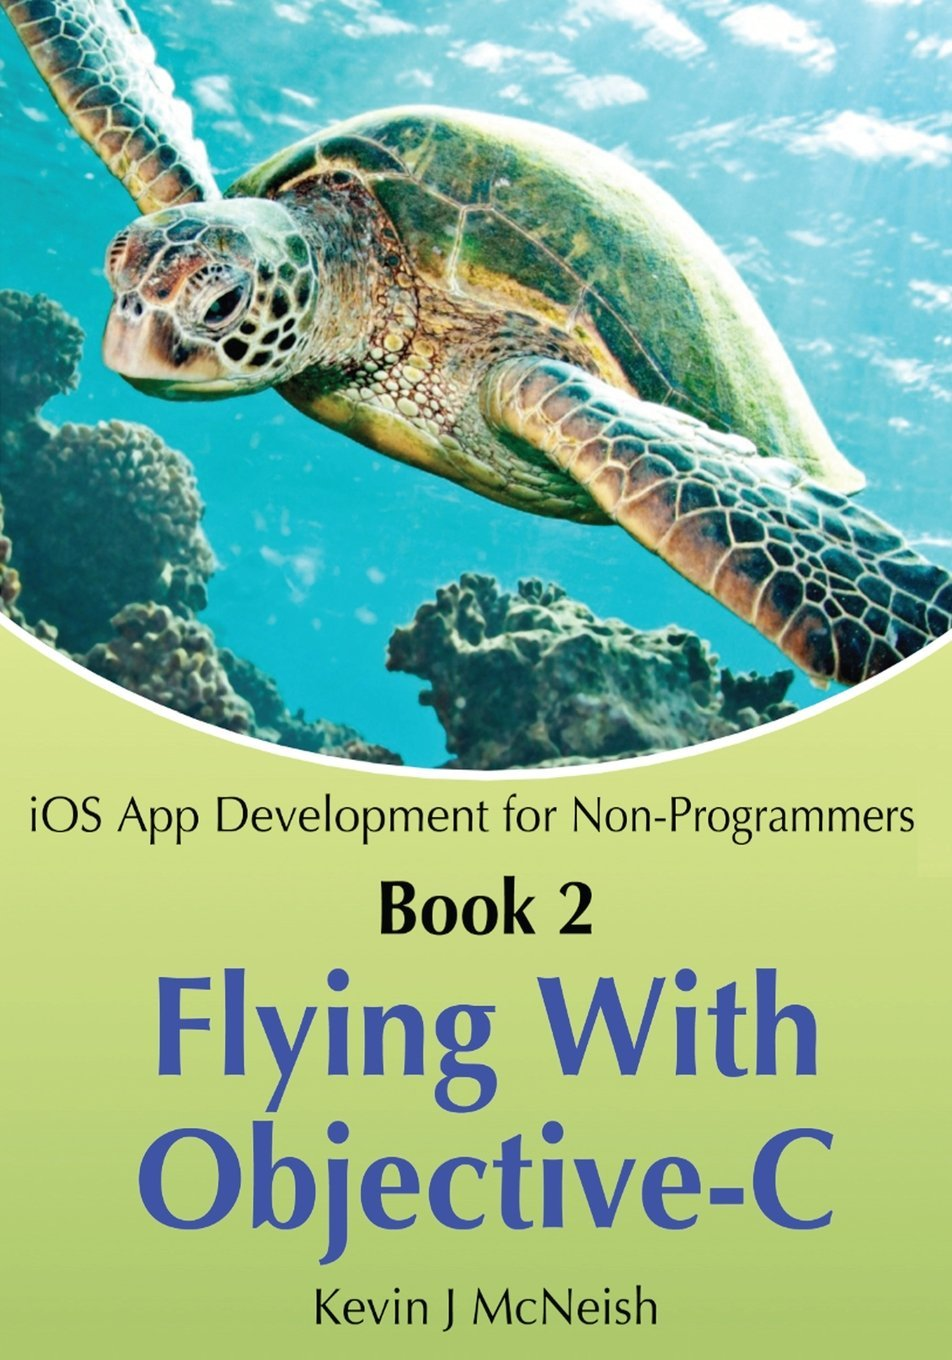 Book 2: Flying With Objective-C - iOS App Development for Non-Programmers: The Series on How to Create iPhone & iPad Apps by Kevin J McNeish (4-Mar-2013) Paperback